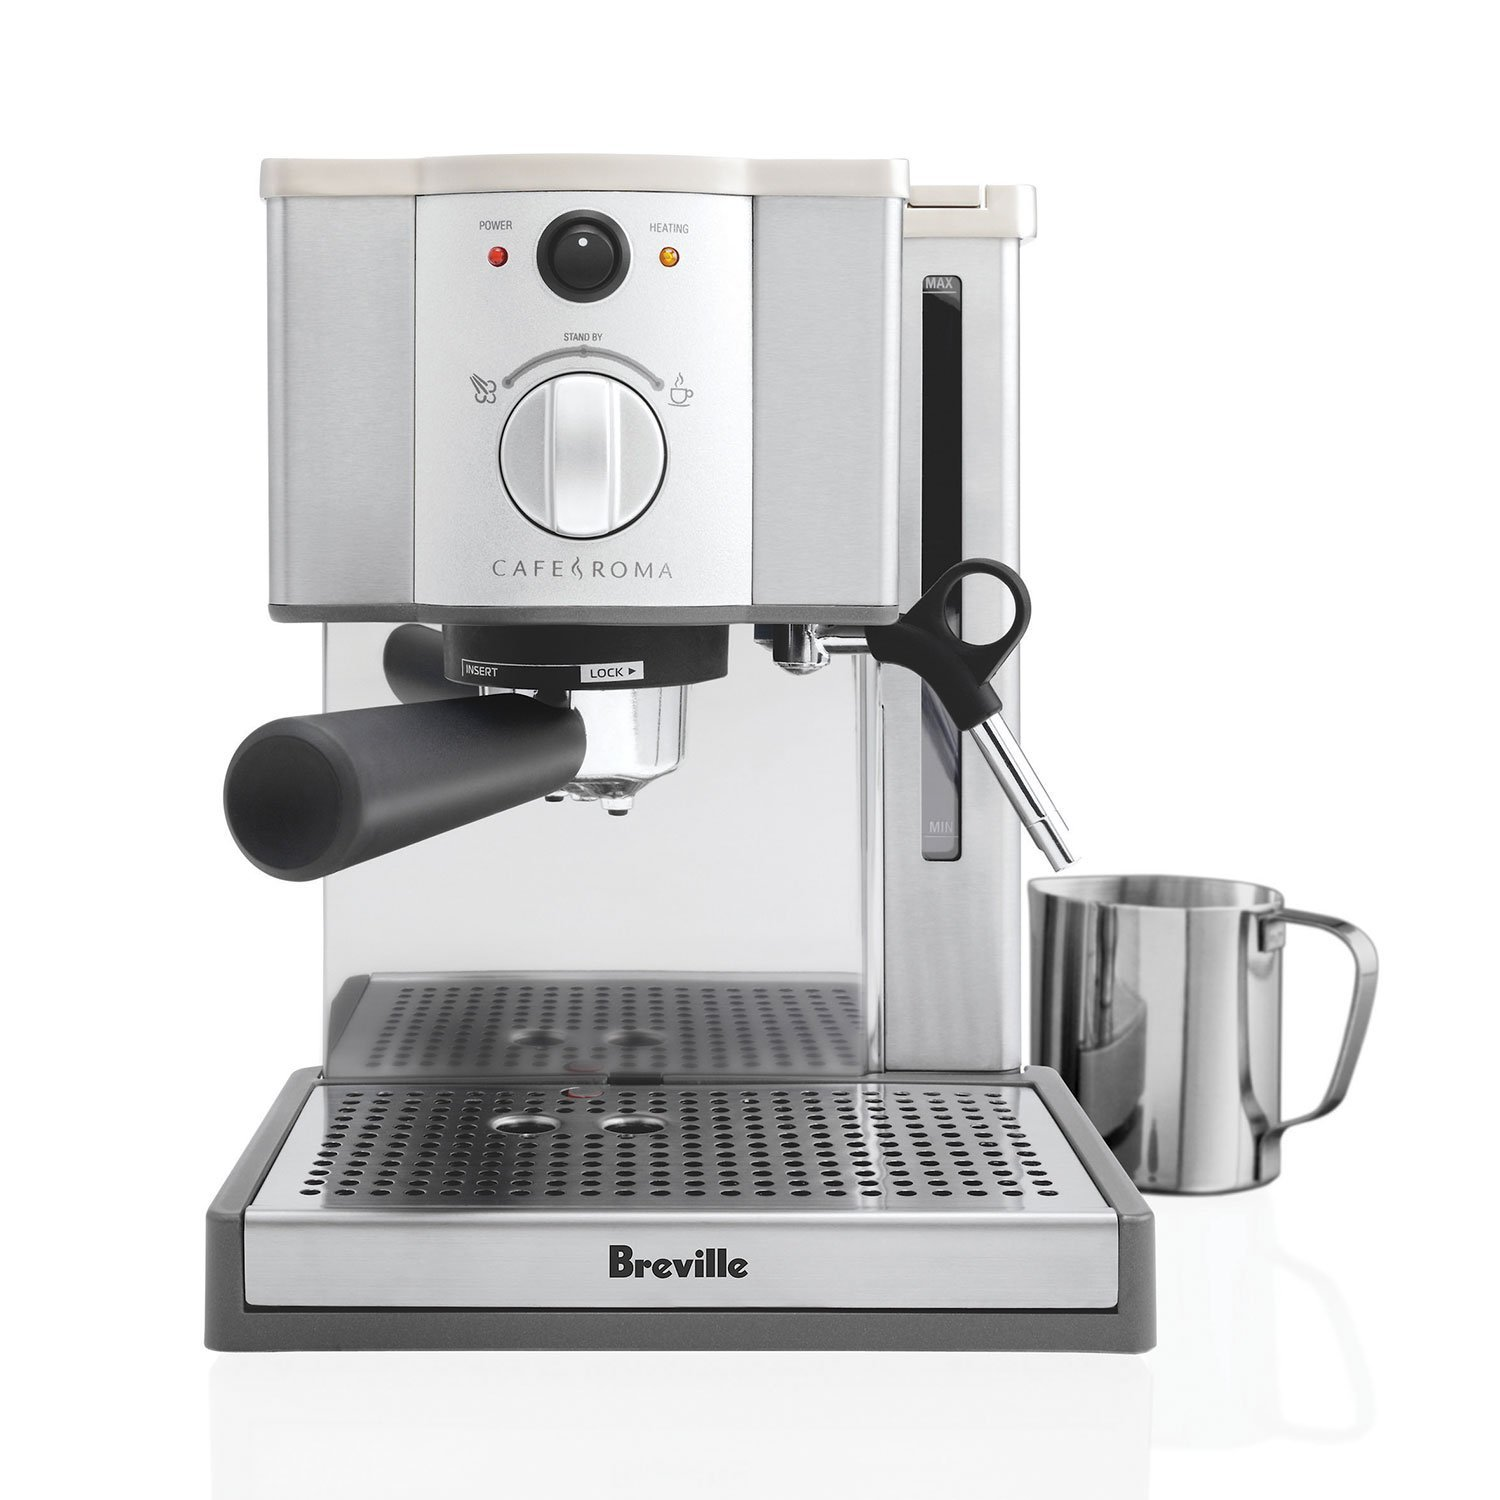 Best Espresso Machine Under 200$